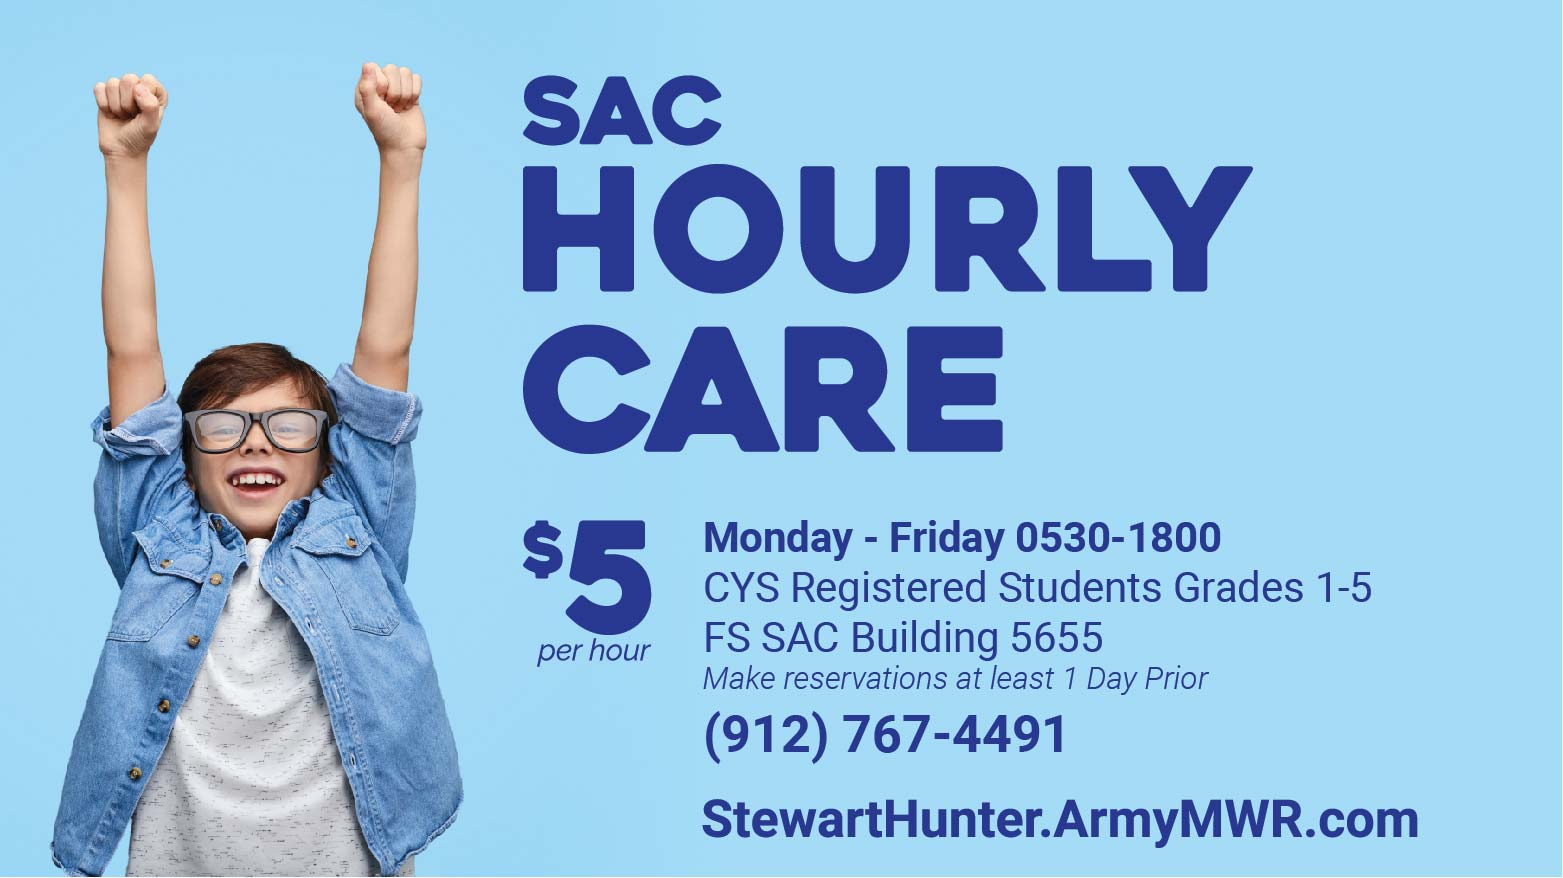 School Age Center Hourly Care - FS